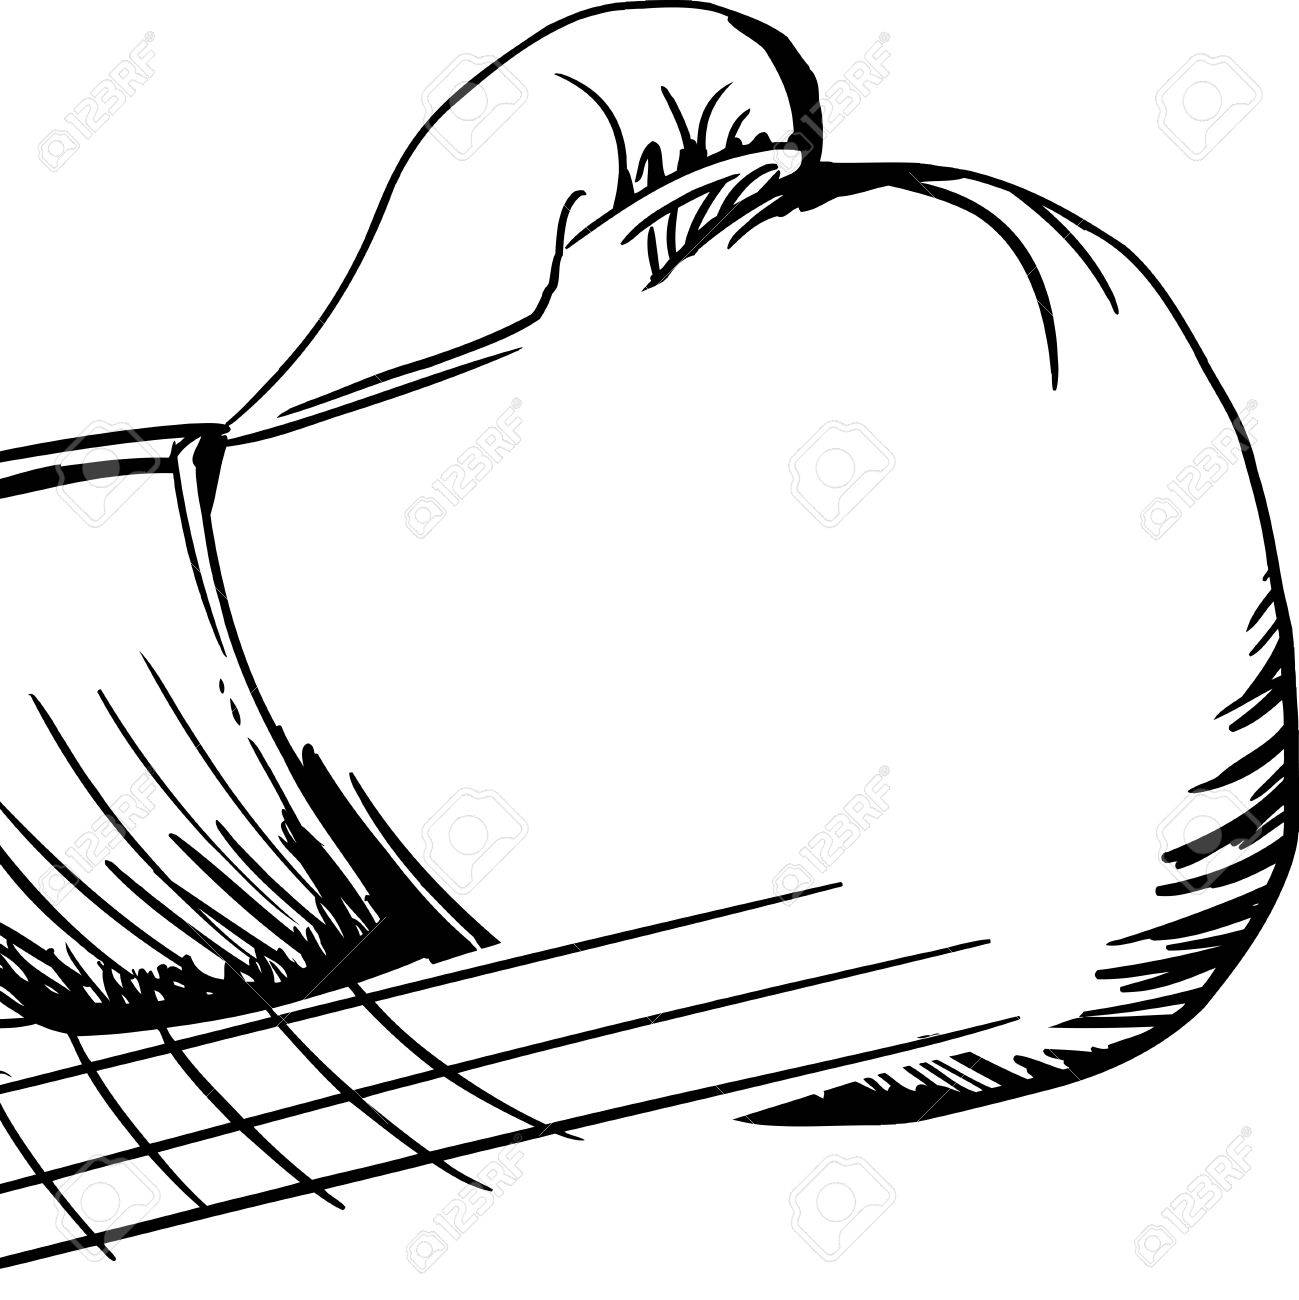 1299x1300 Outlined Cartoon Single Boxing Glove In Motion Royalty Free